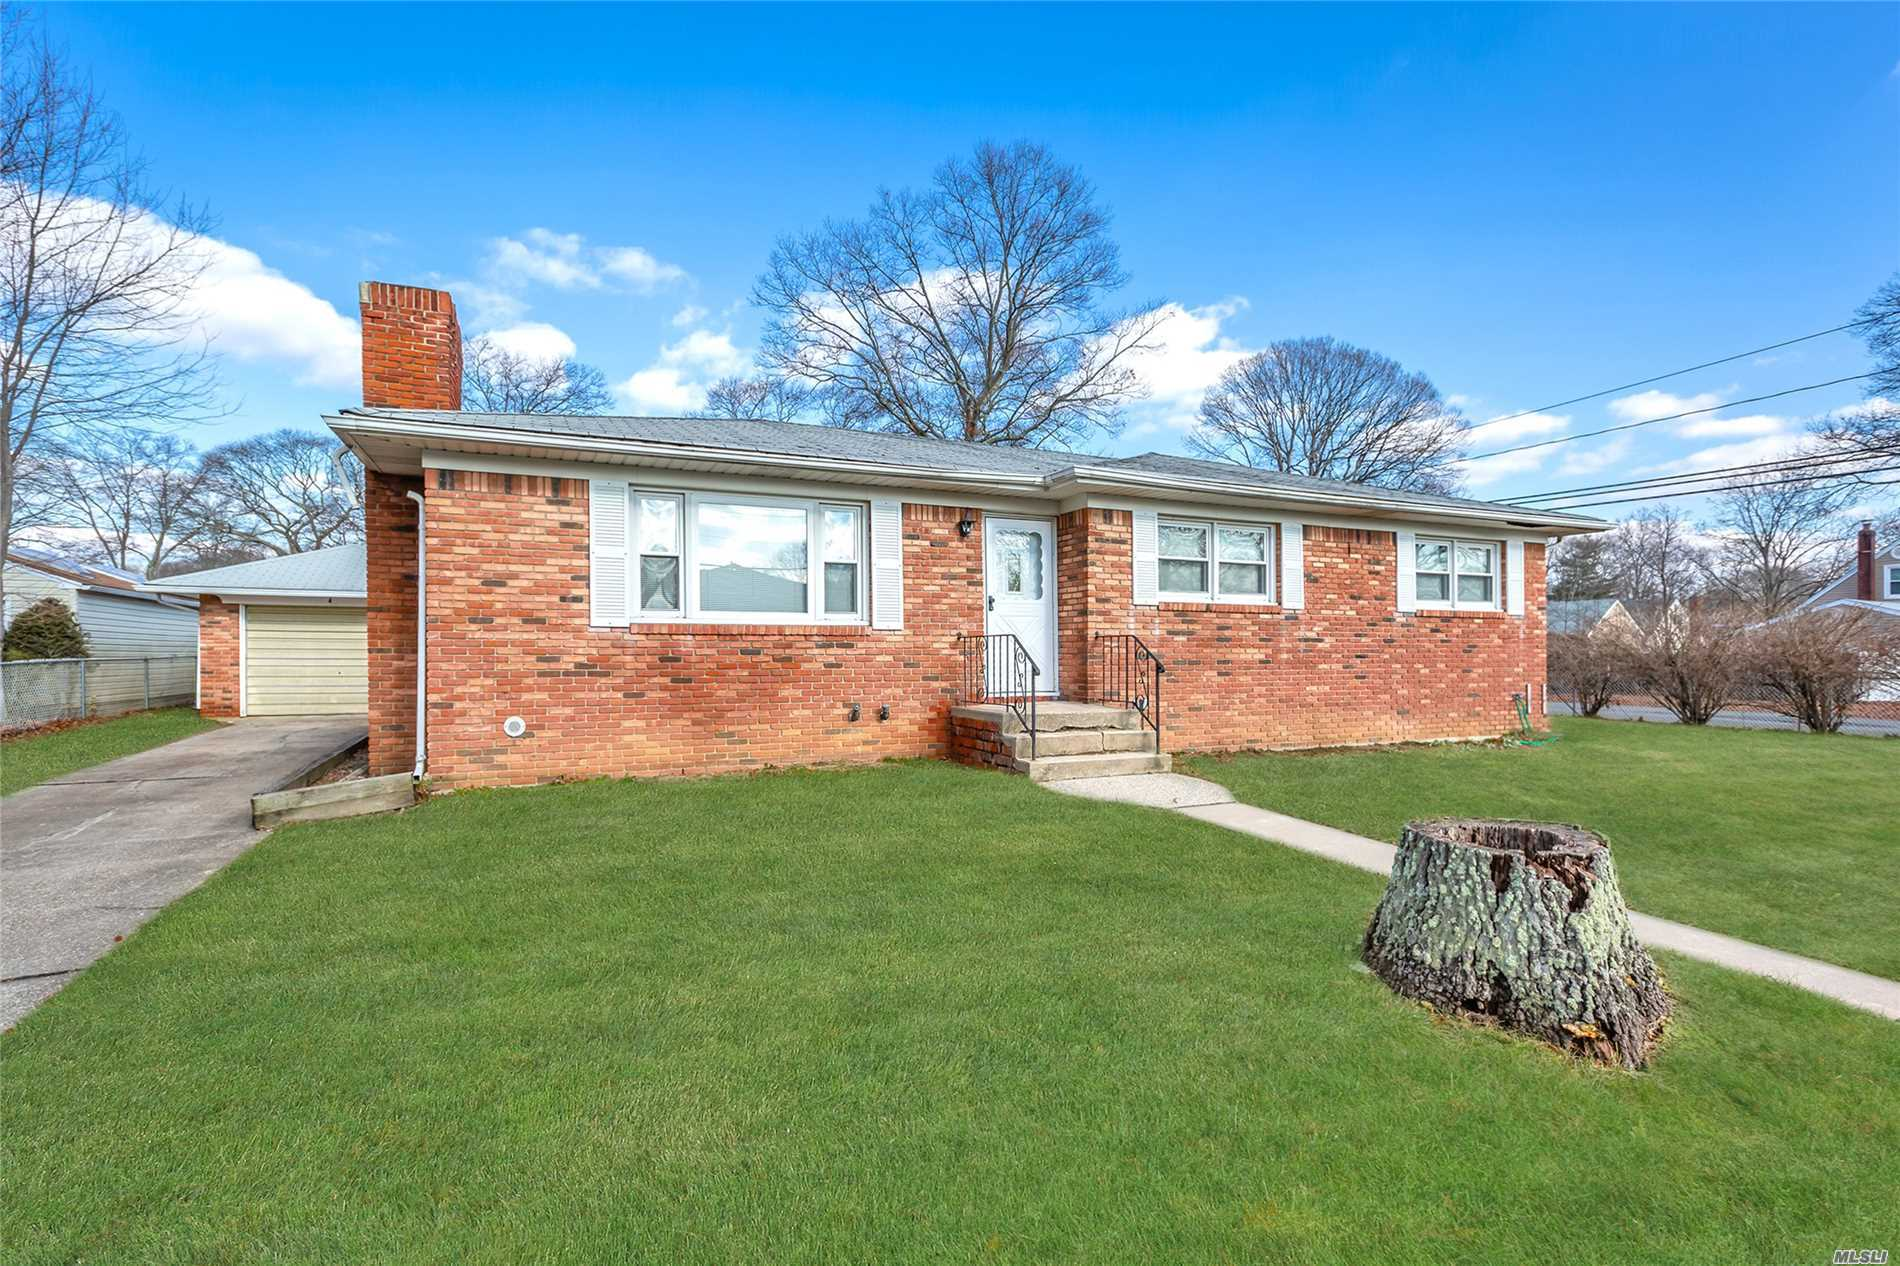 Location Location Location.....Sachem Schools Minutes Away From The Lie, Lirr, Airport And Shopping. This Racnch Offers 3Bdrms, Living Room W/Fireplace, Dining Room, Eik And 2 Full Bathrooms. Cac, Full Basement With Seperate Entrance And Hardwood Floors Throughout. Hurry Wont Last!!!!!!